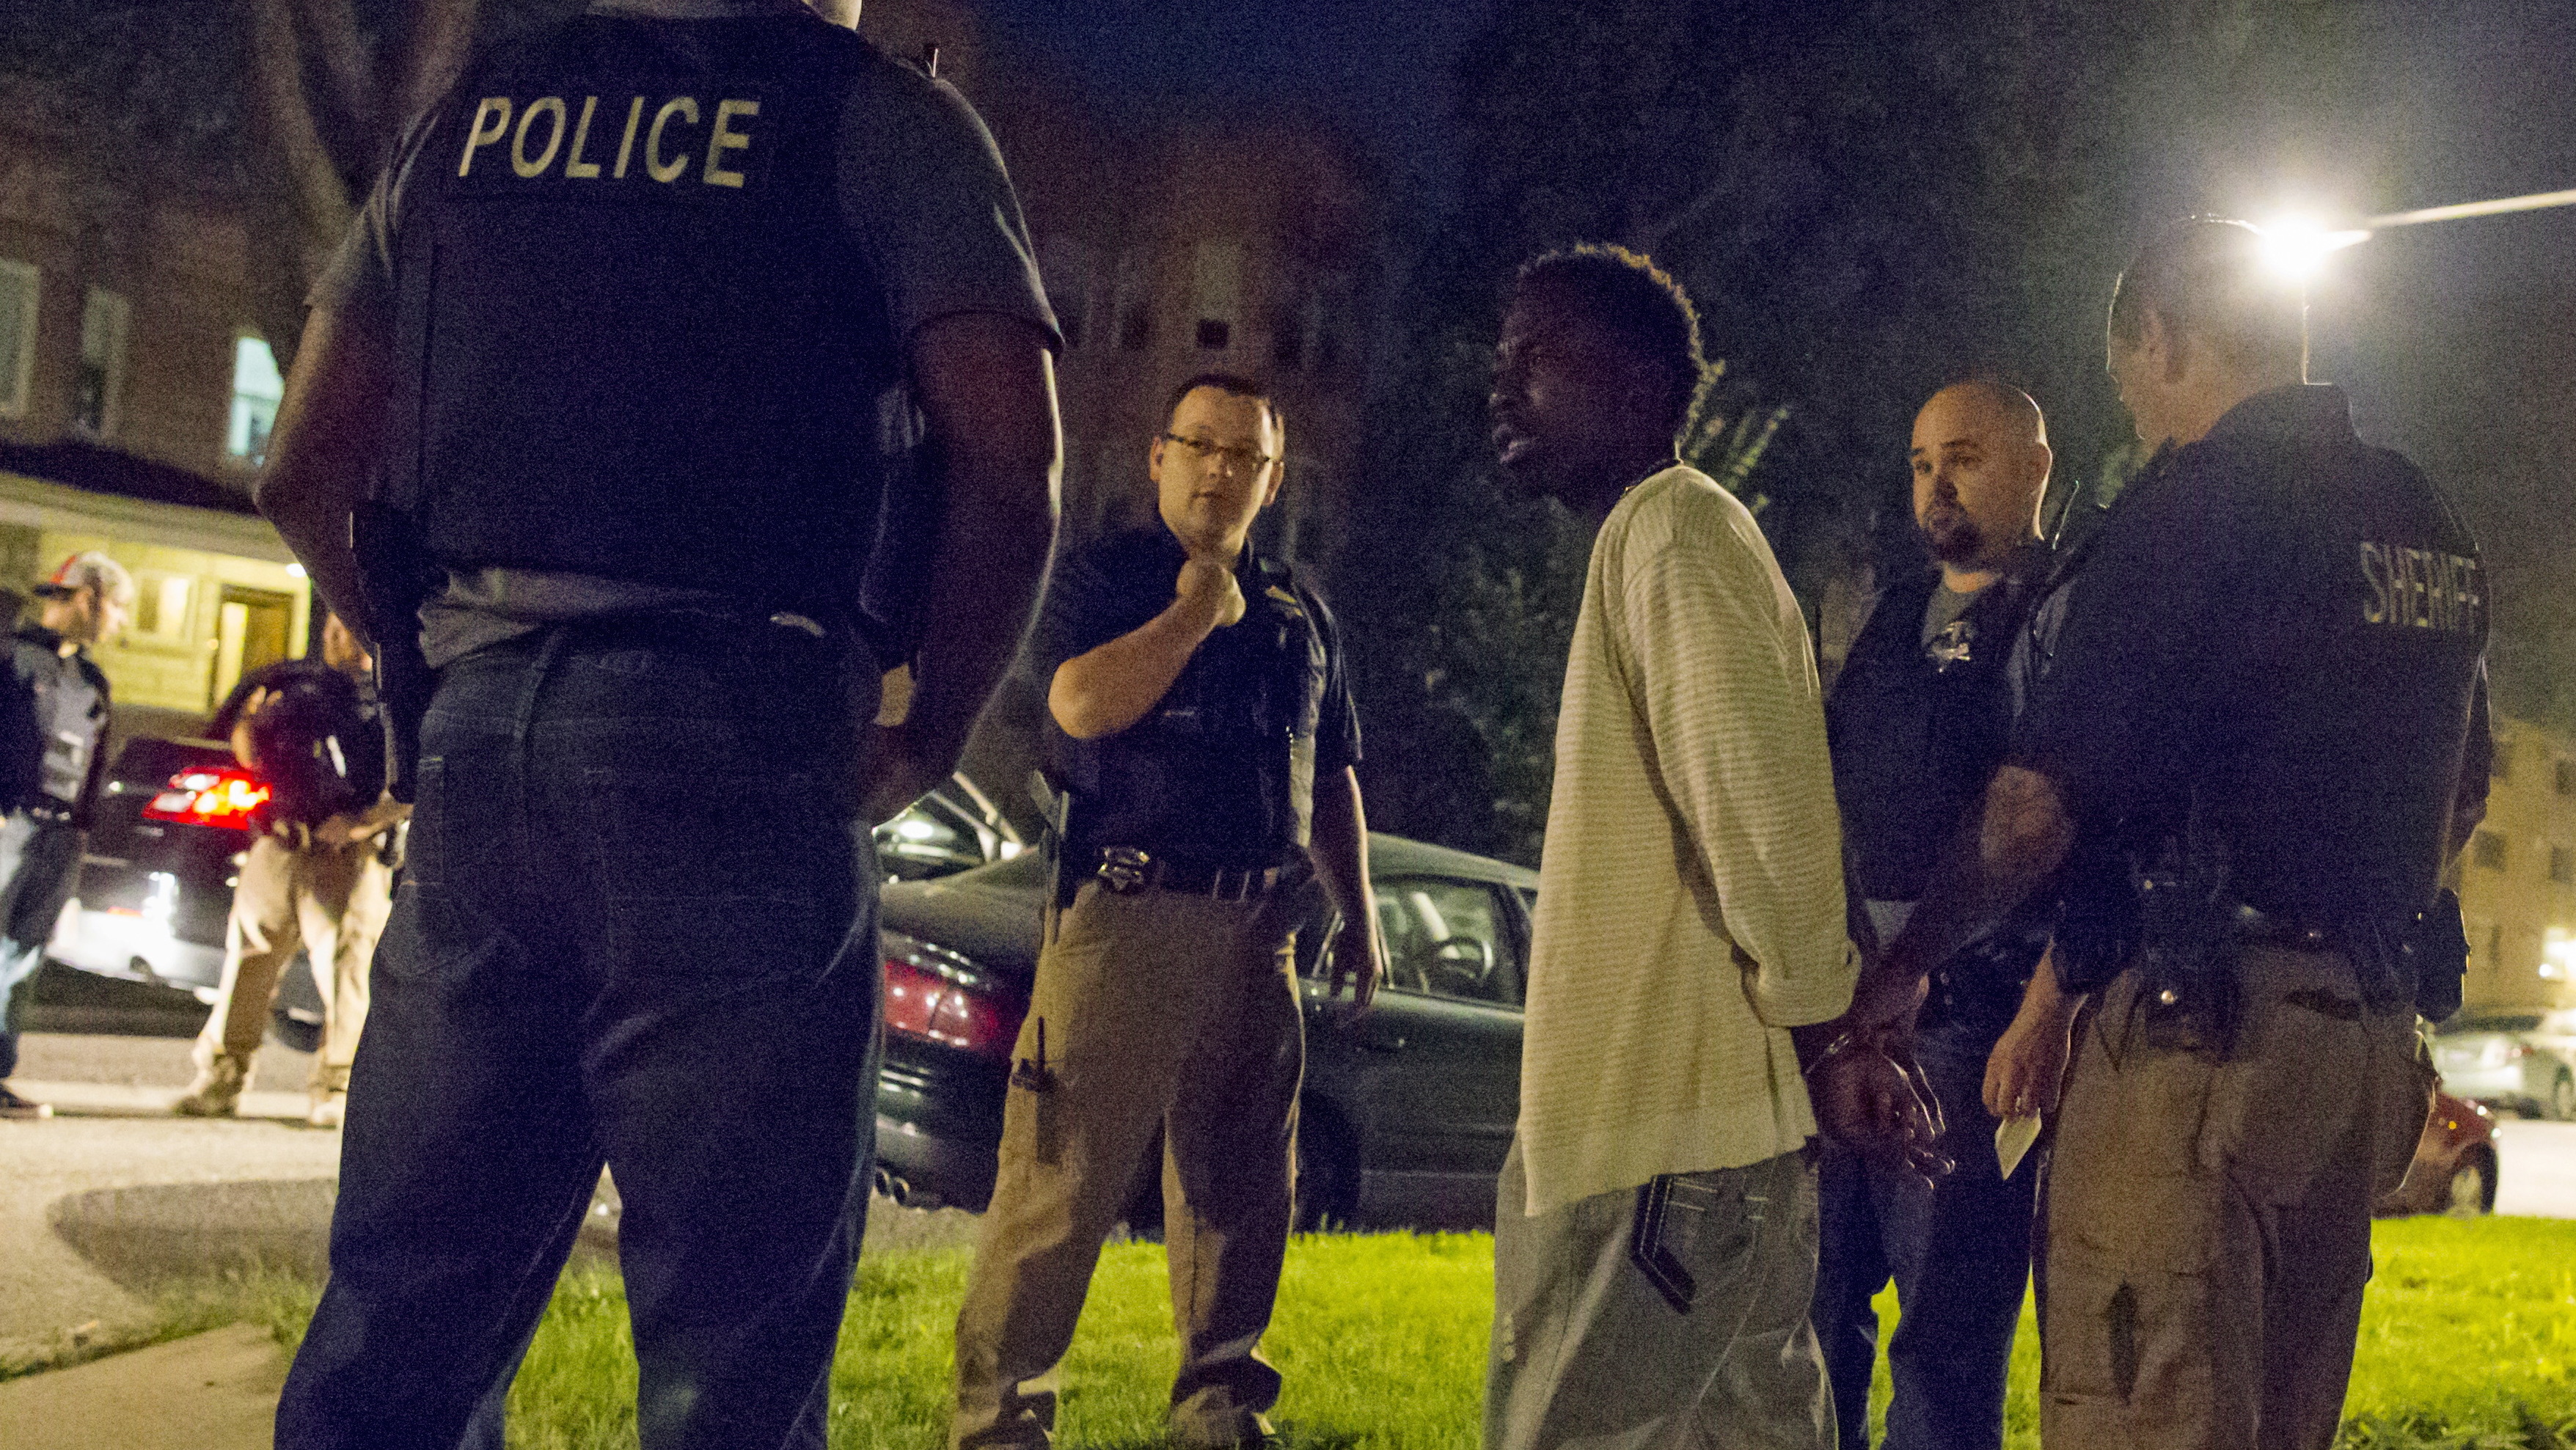 Cook County Sheriff police officers handcuff and question a man who walked up to them while officers where conducting an unrelated street stop in the Austin neighborhood in Chicago, Illinois, United States, September 9, 2015.